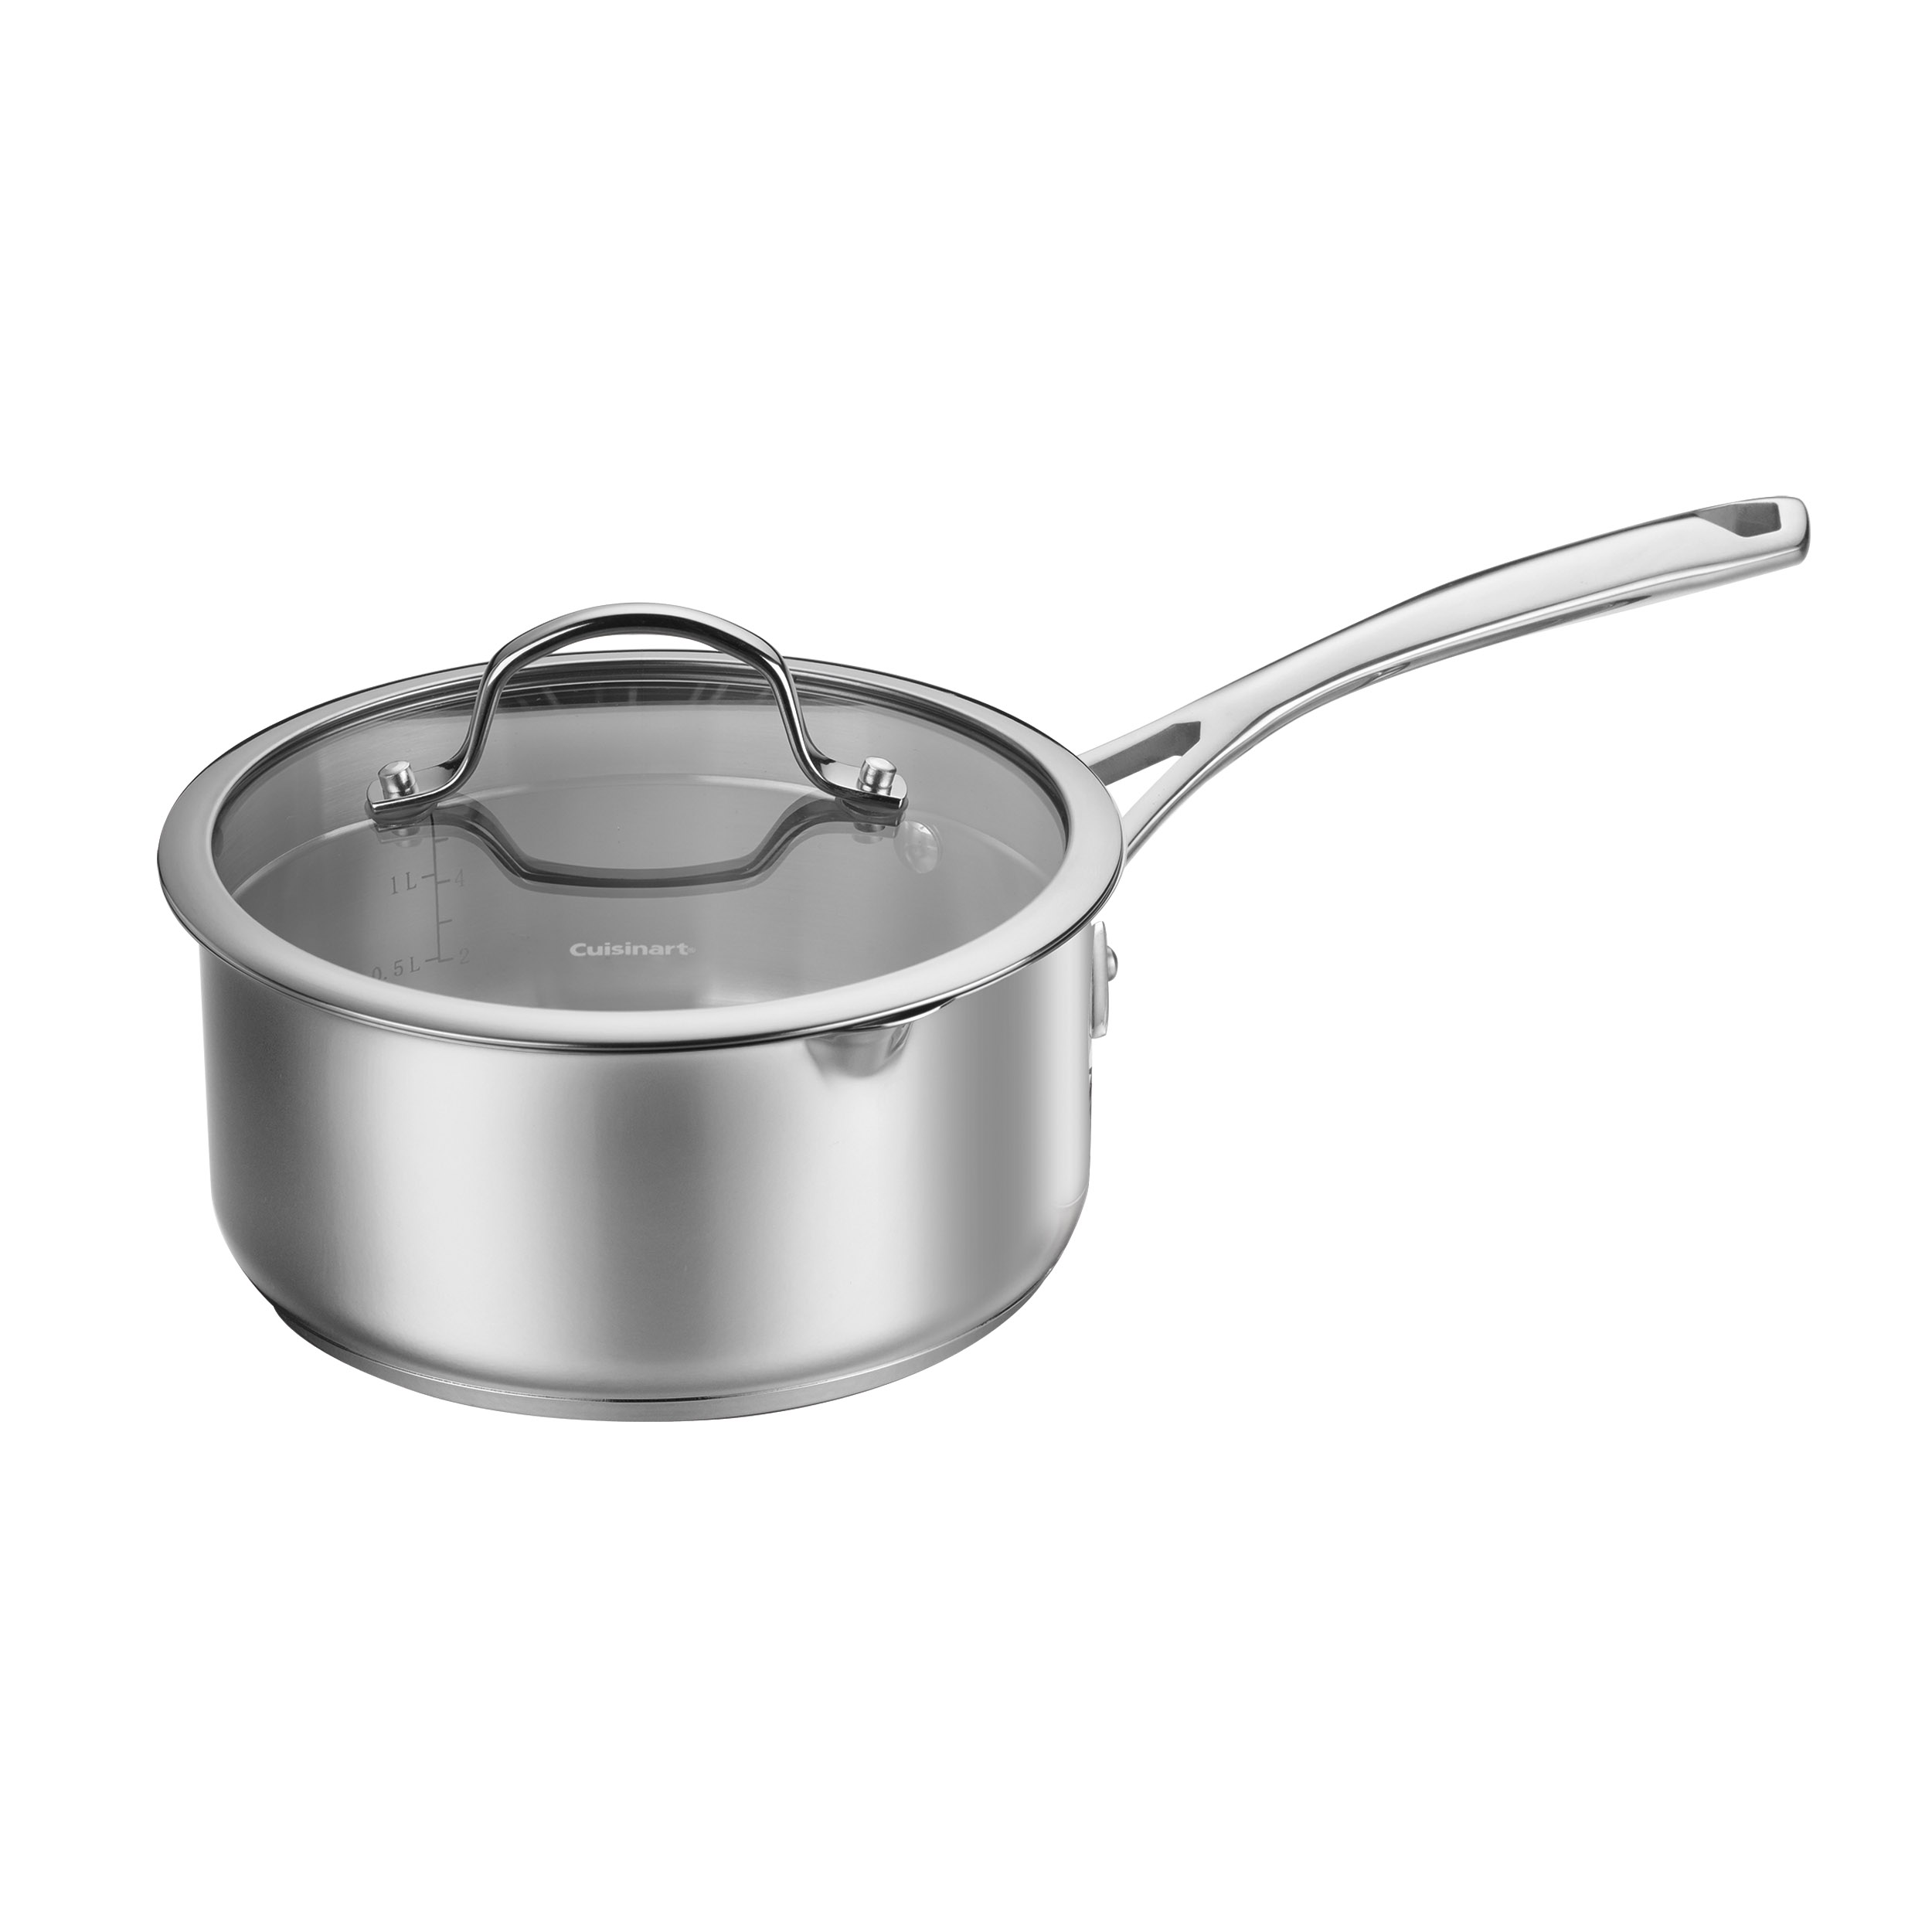 2 Quart Pour Saucepan with Straining Cover